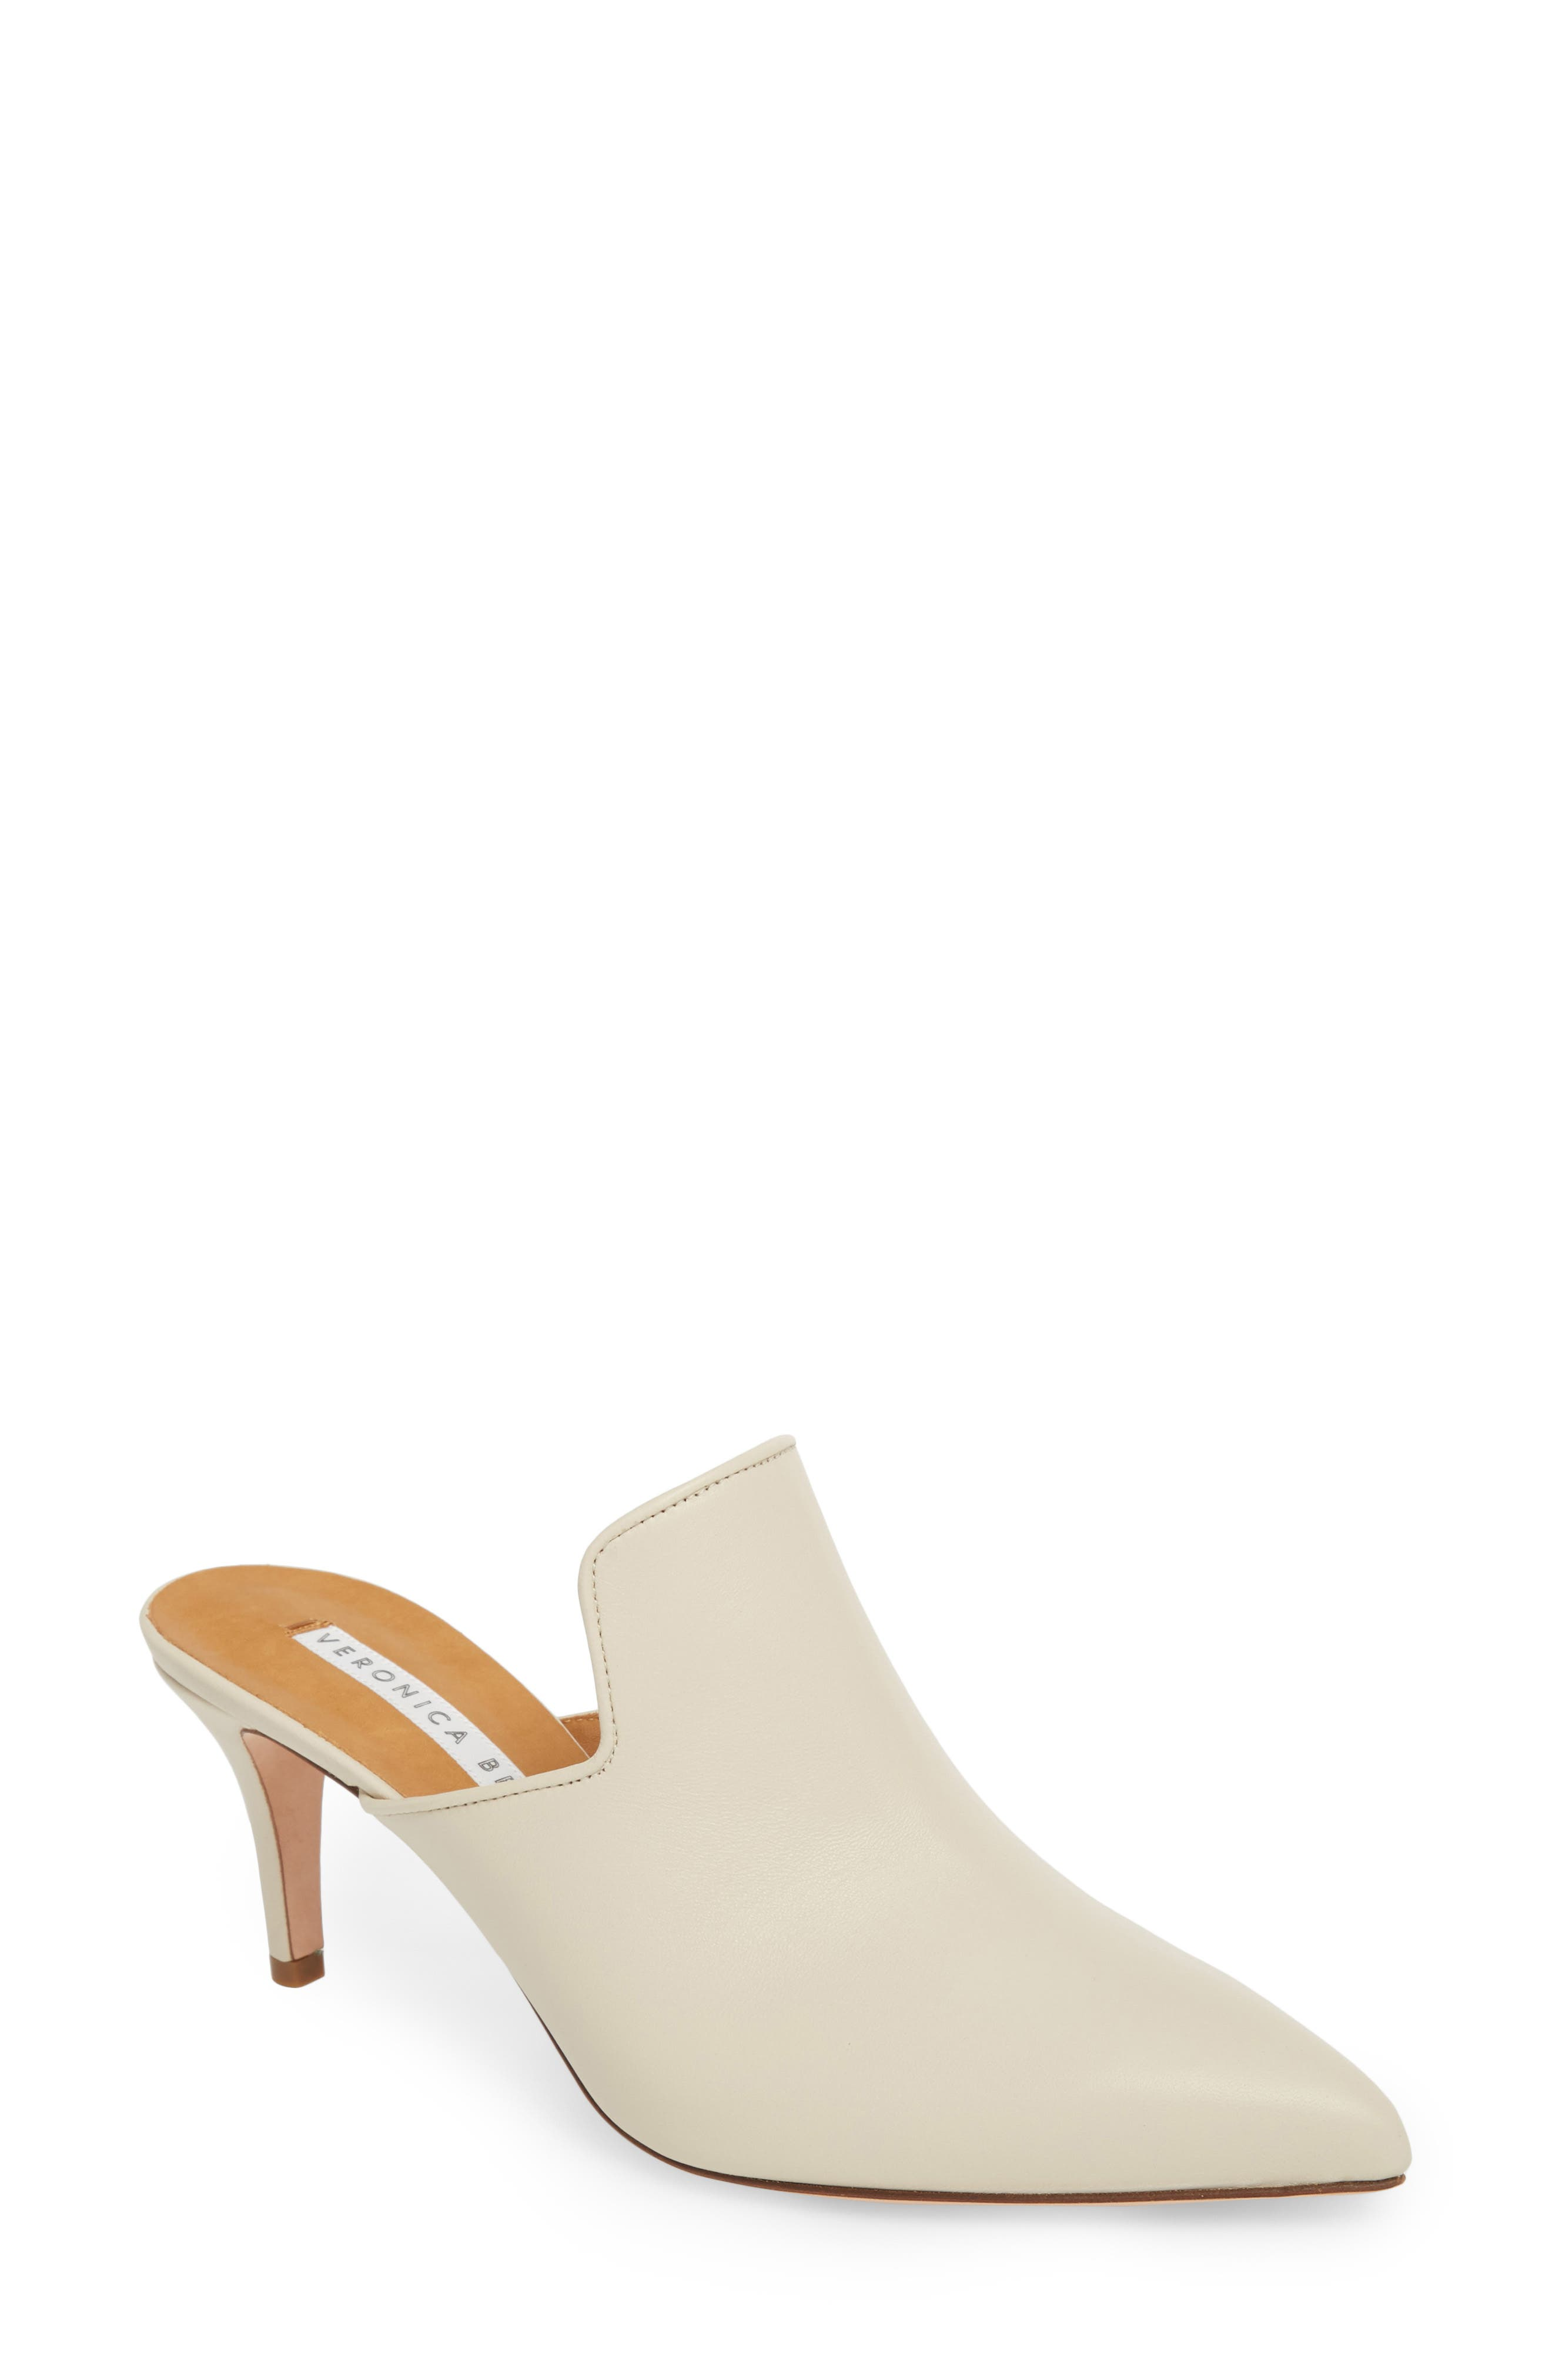 Pearla Mule,                         Main,                         color, 100